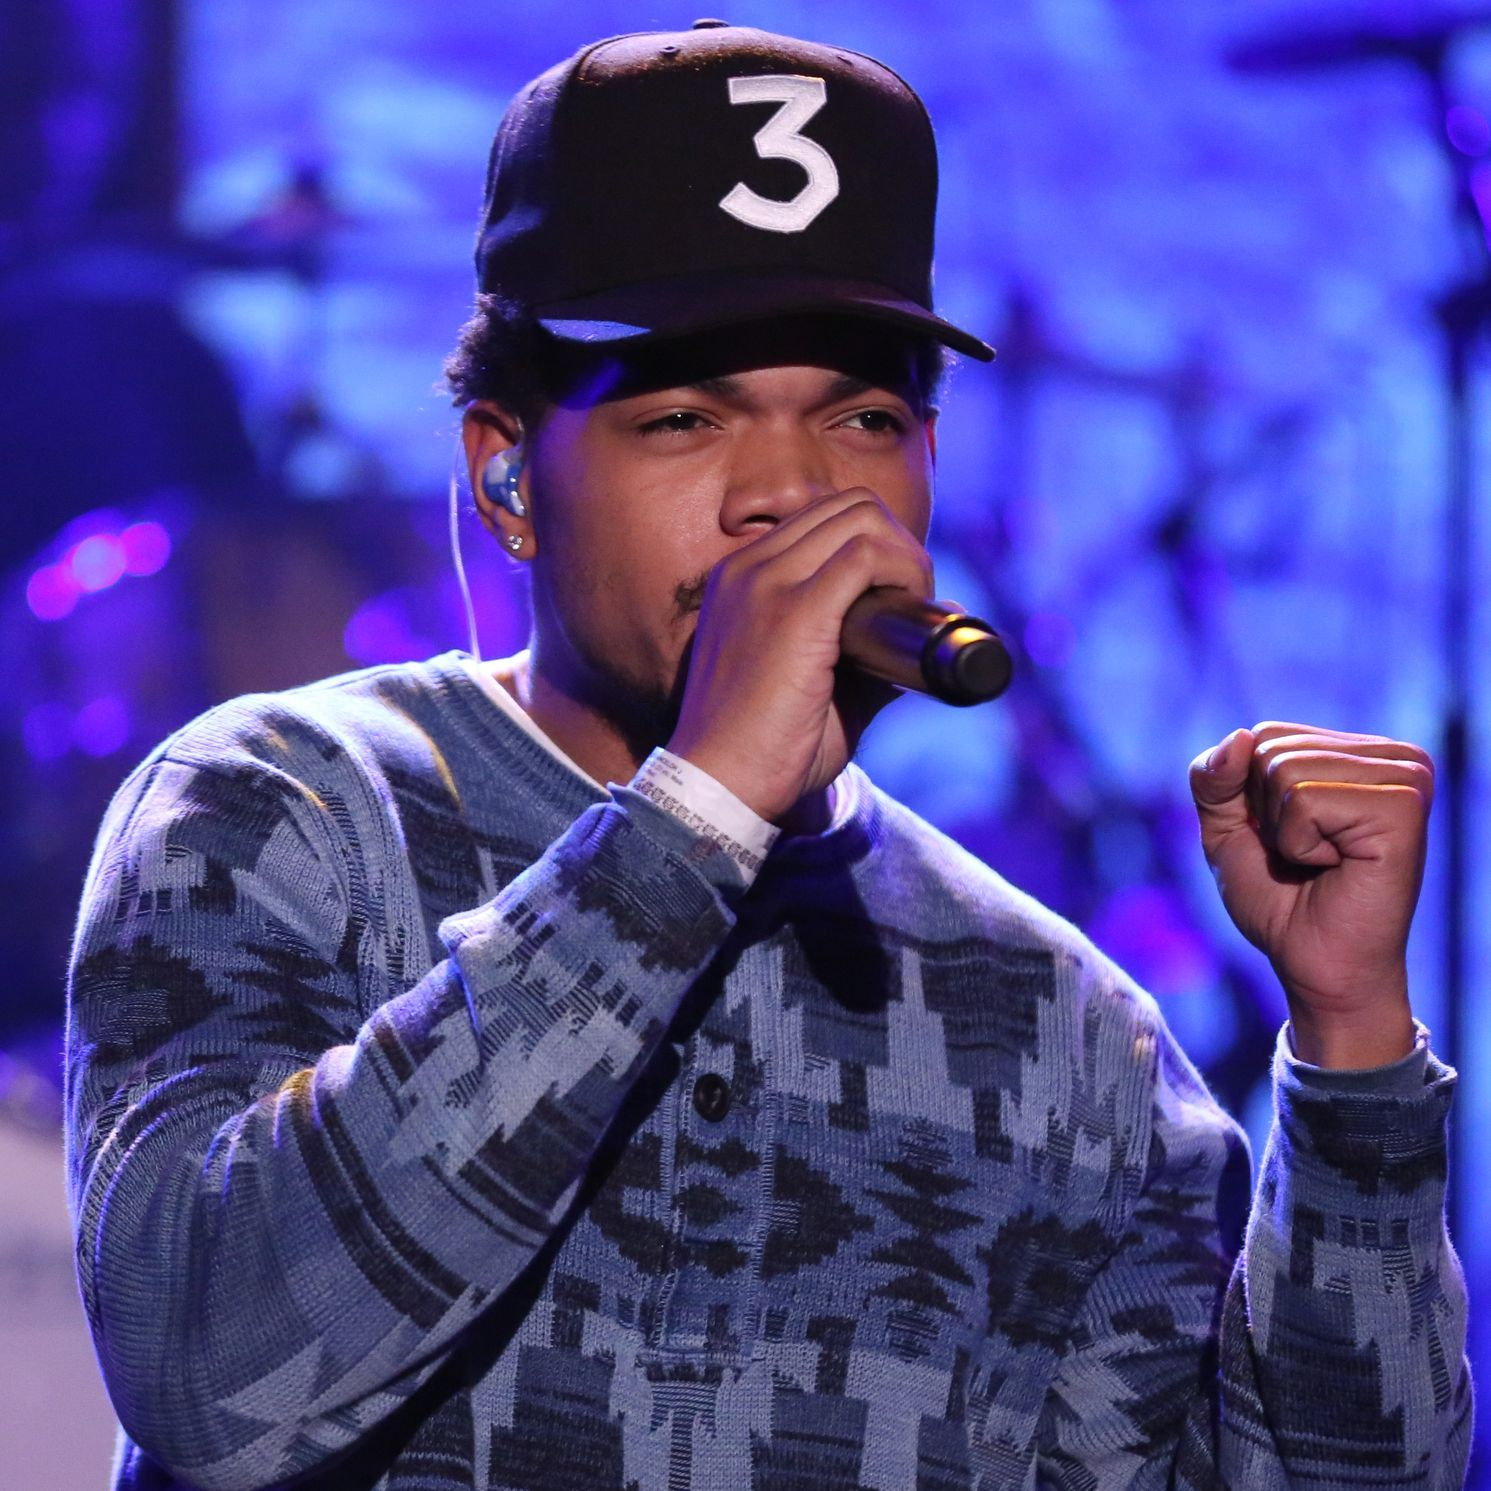 Coloring book chance -  No Requests Live Chance S Coloring Book Mtv